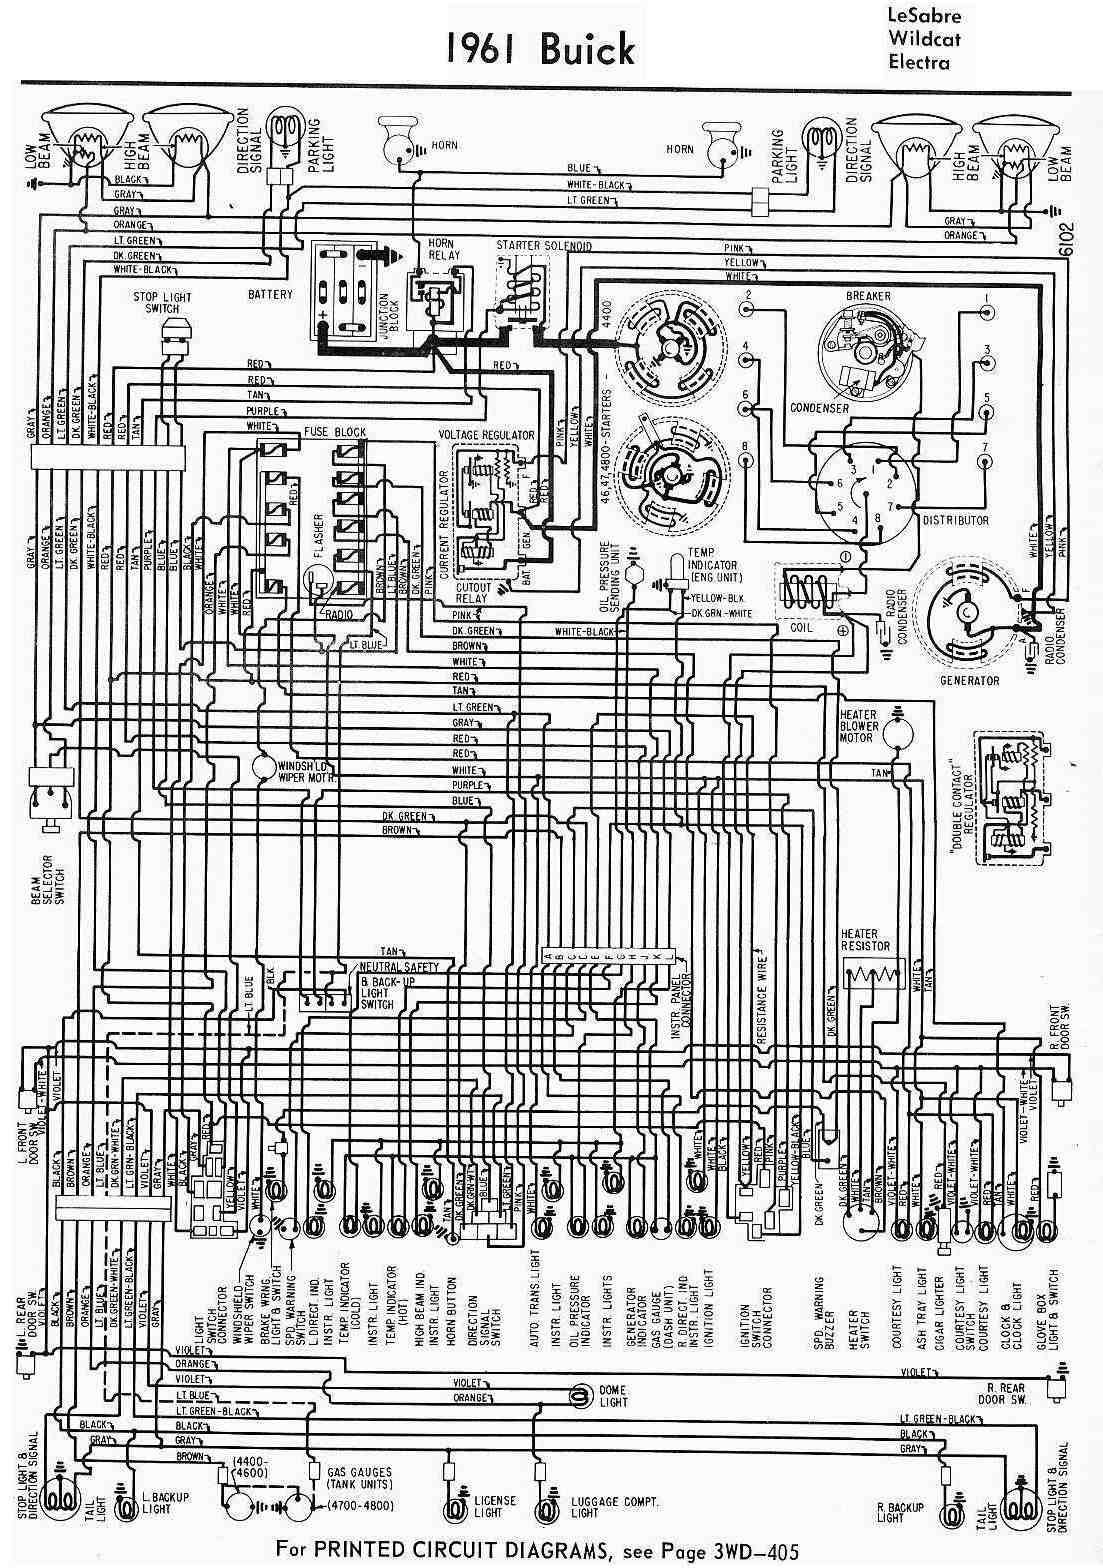 a6441862bfcf99130fb7ff5756998744 1948 studebaker wiring diagram manual repair with engine 1955 studebaker wiring diagram at webbmarketing.co